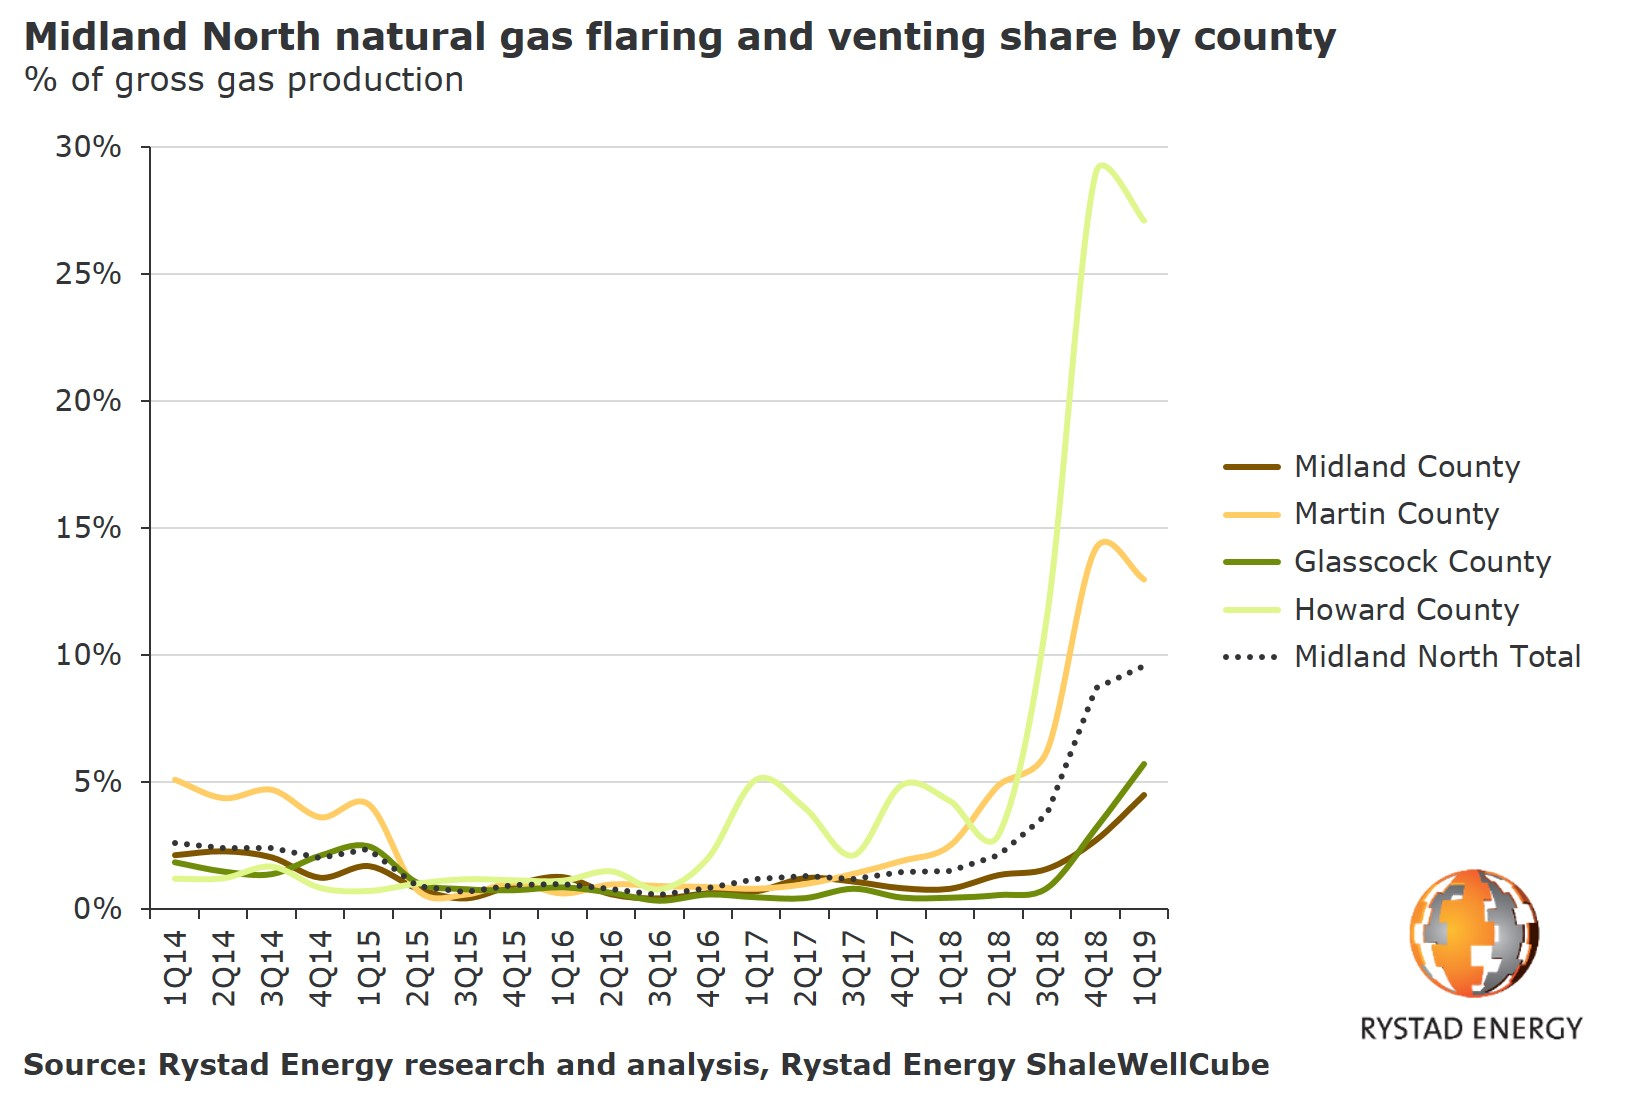 A chart showing the Midland North natural gas flaring and venting share by country in % of gross gas production.